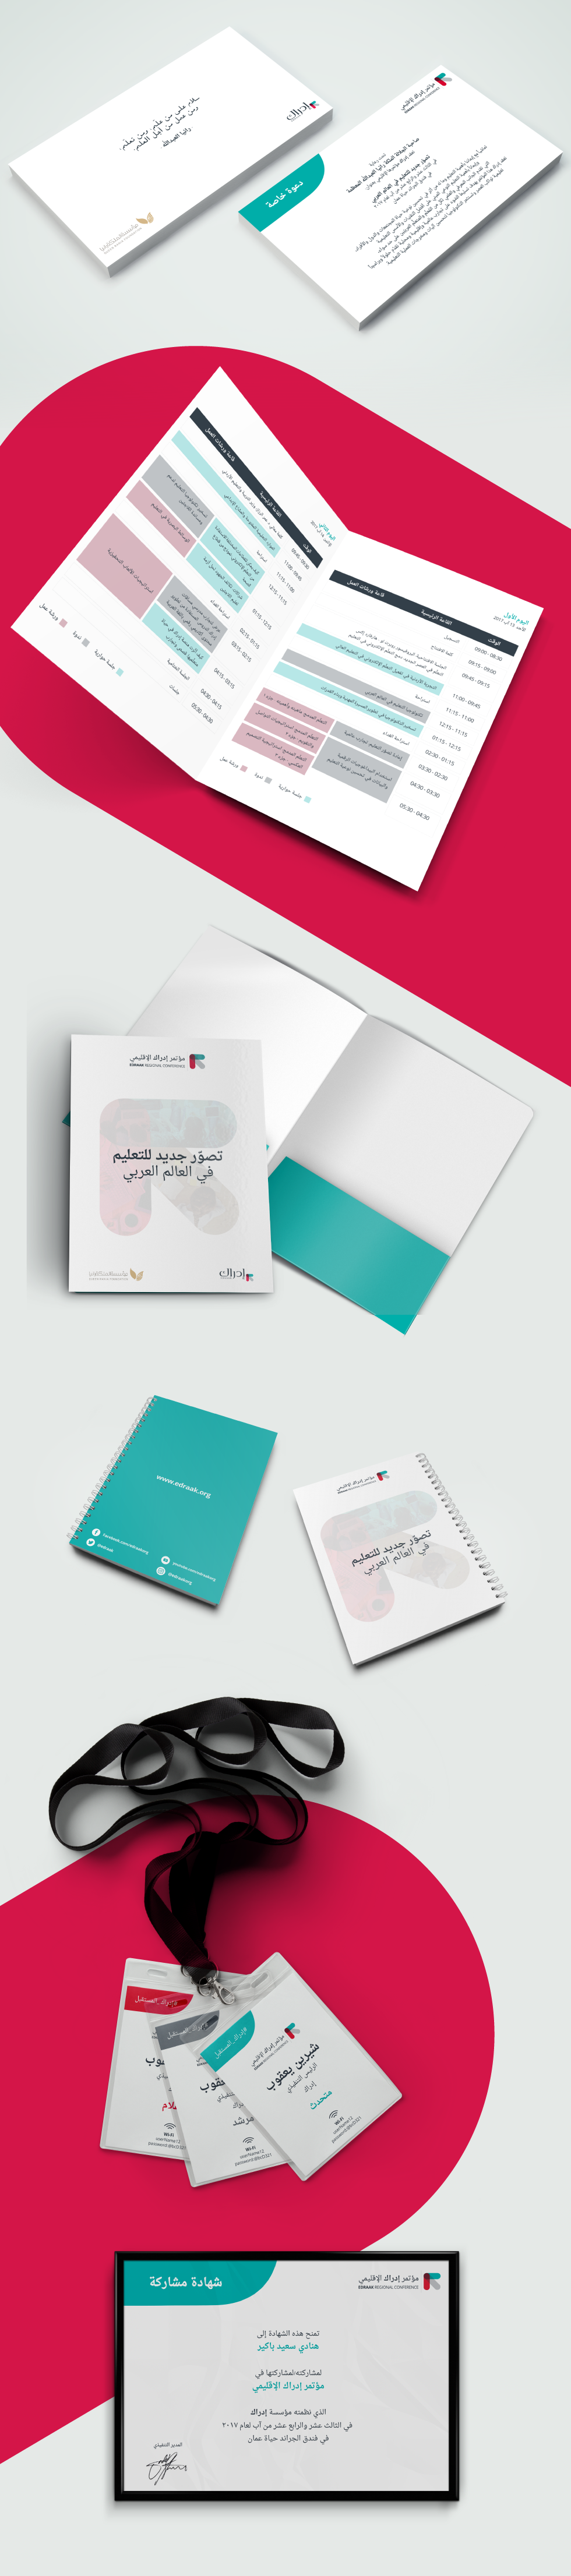 Edraak First Regional Conference Branding and Designs